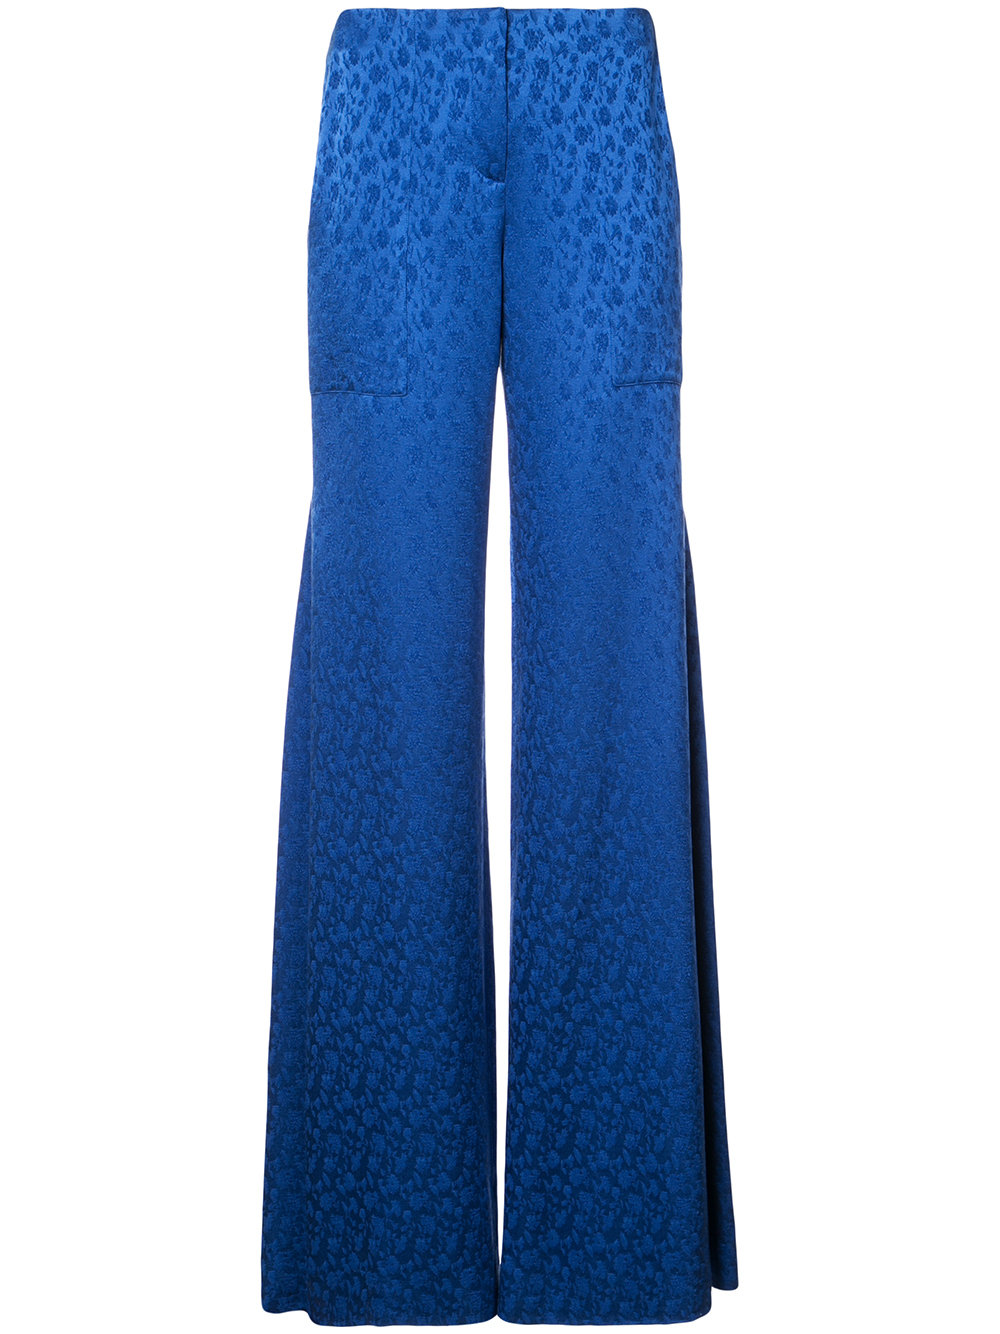 Hellessy Trousers, $920